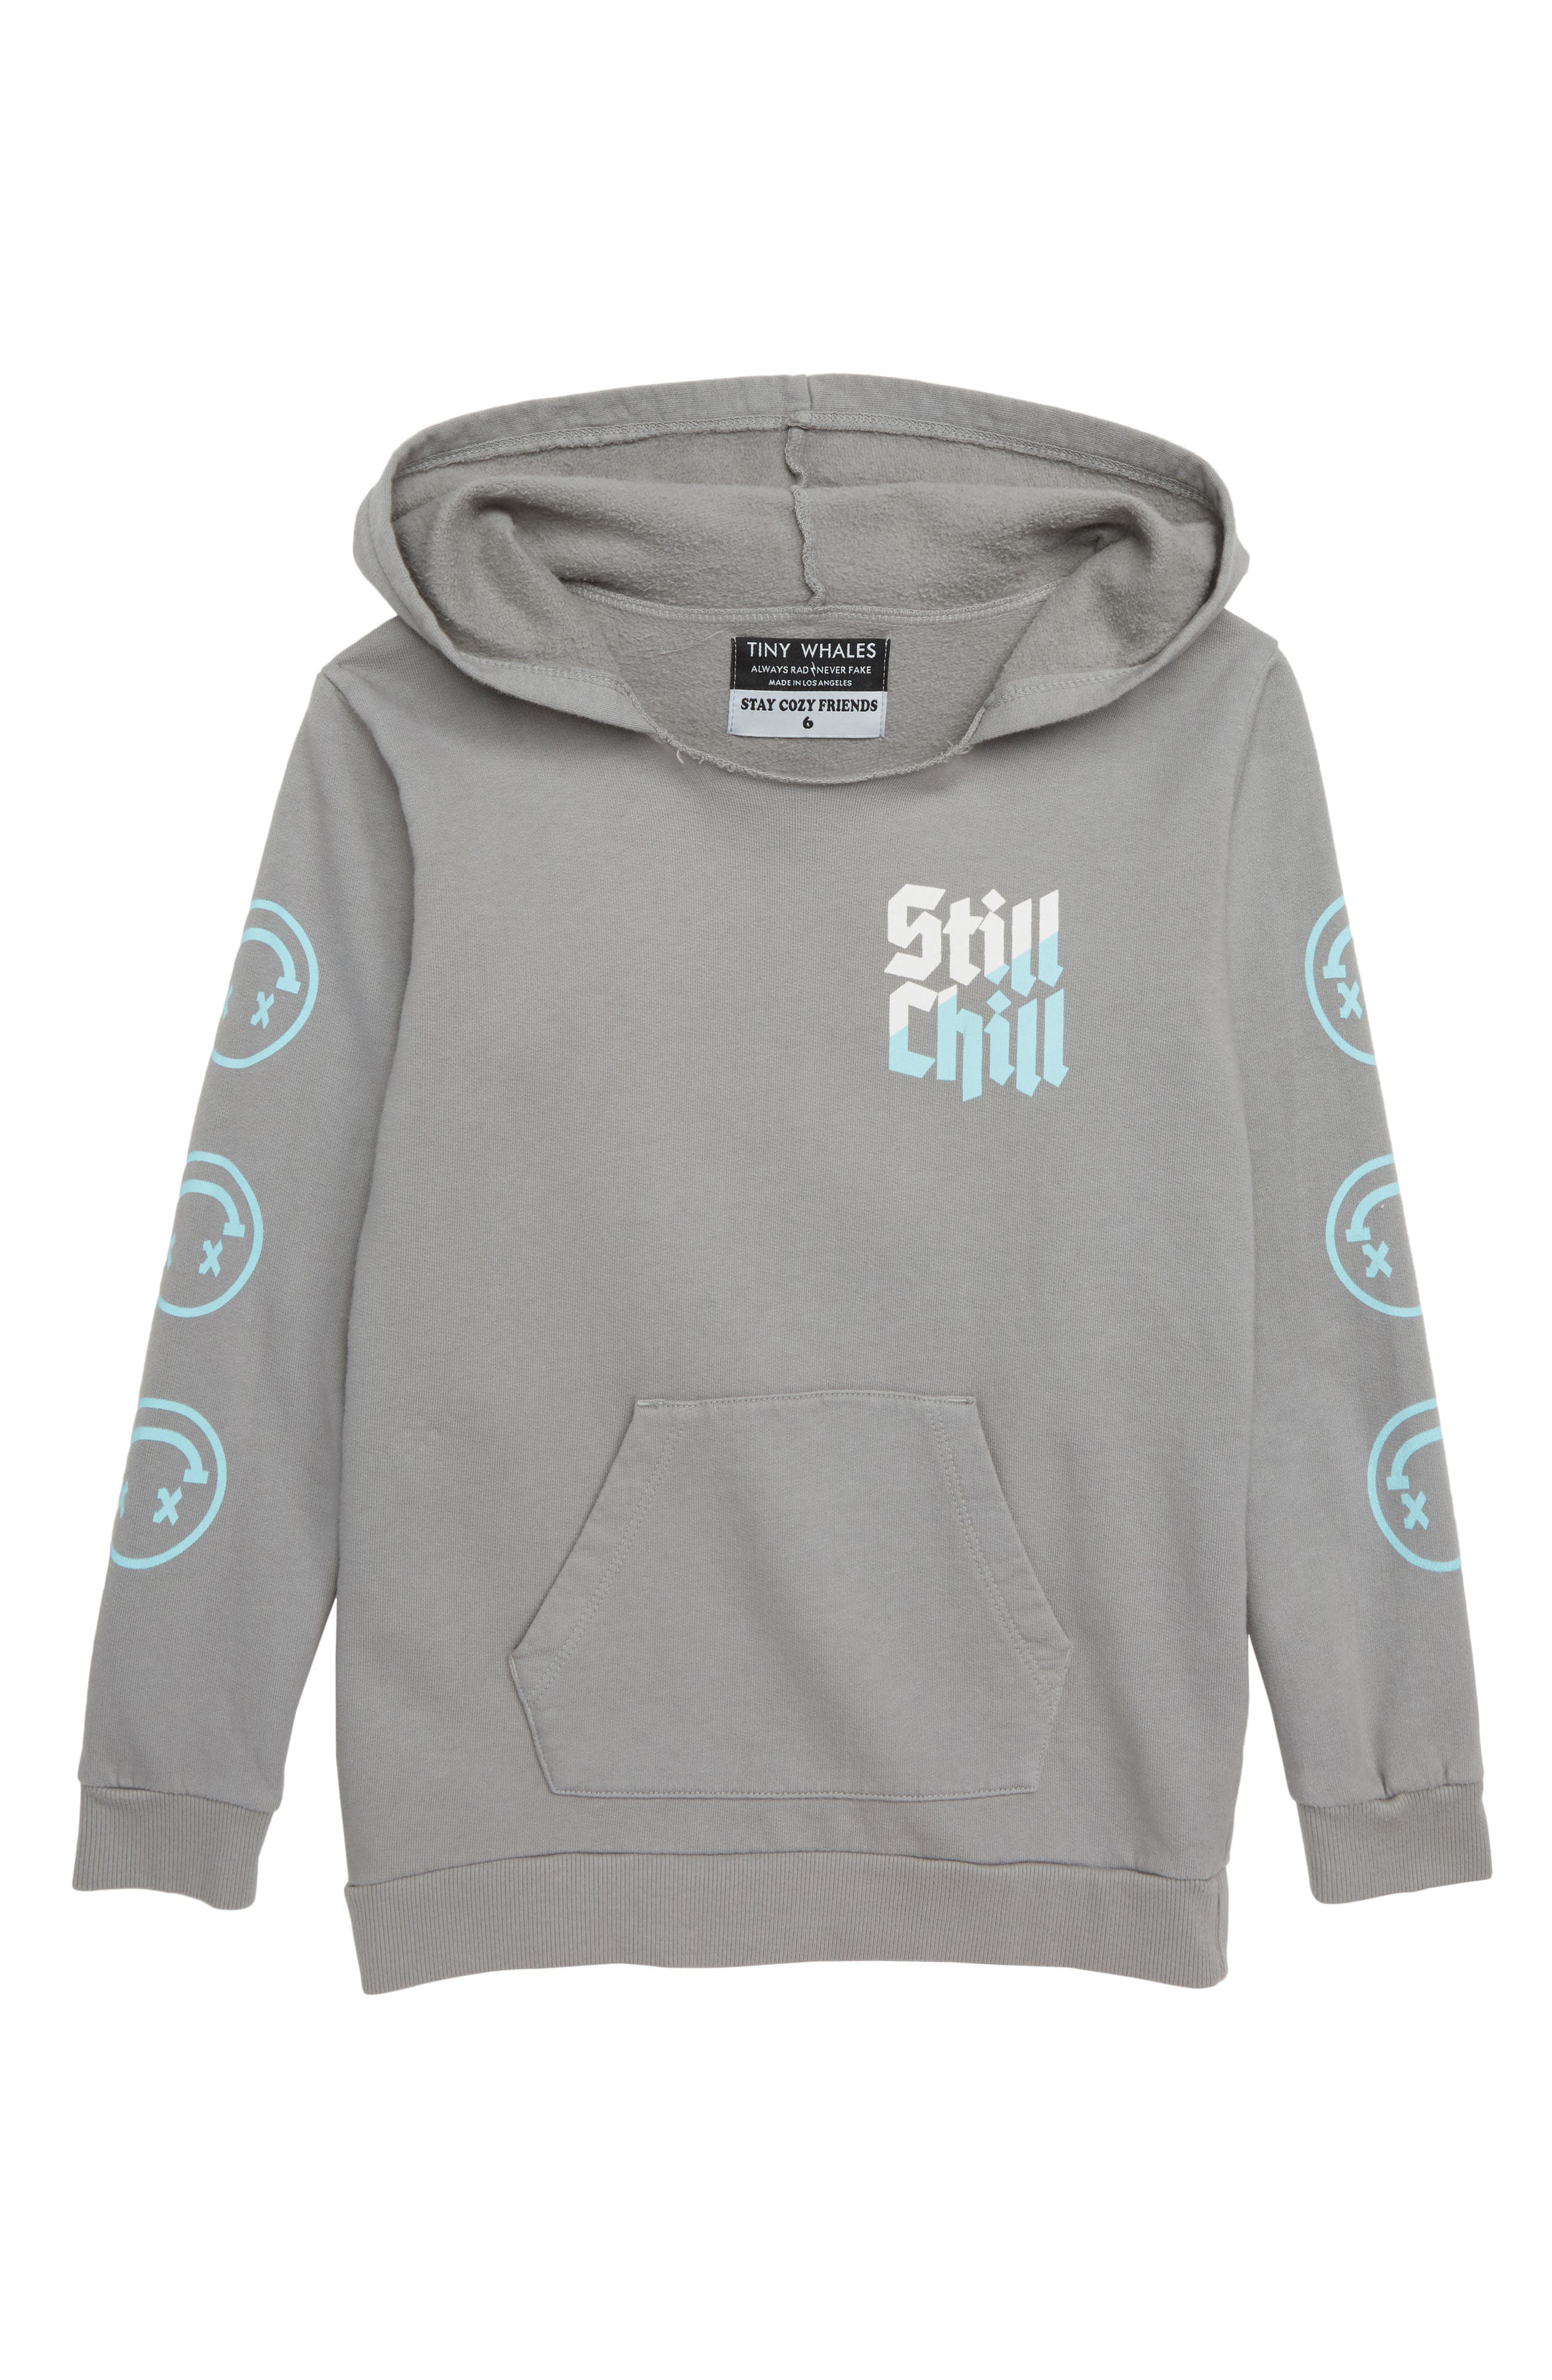 Still Chill Hoodie,                         Main,                         color, SLATE